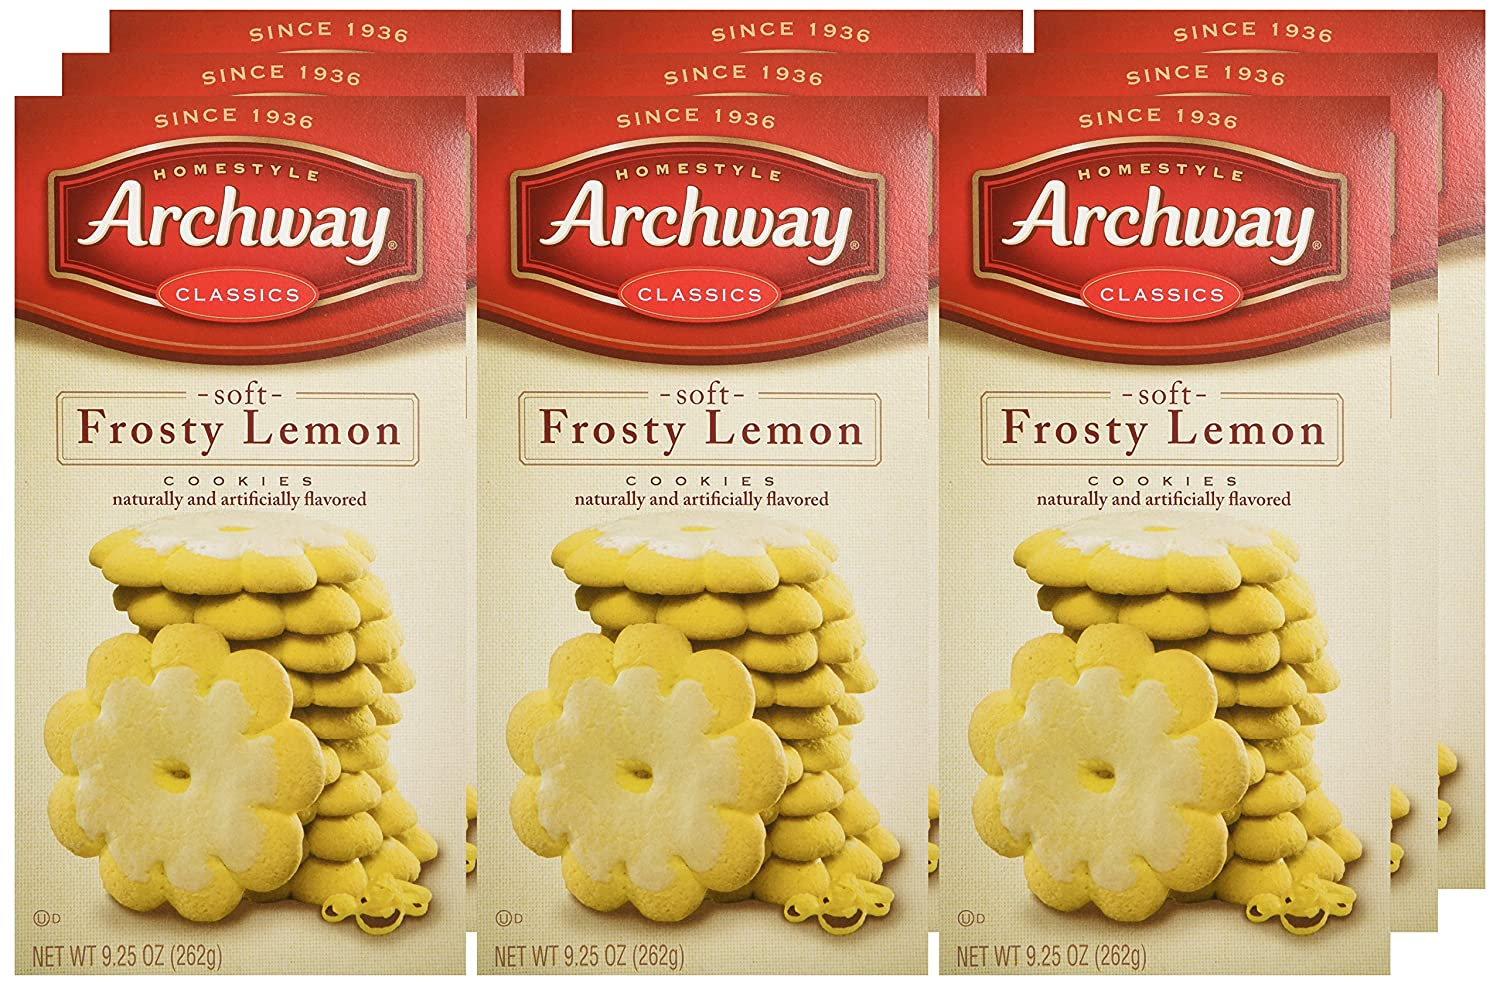 Amazon.com: Archway Cookies, Frosty Lemon, 9.25 Ounce (Pack of 9)